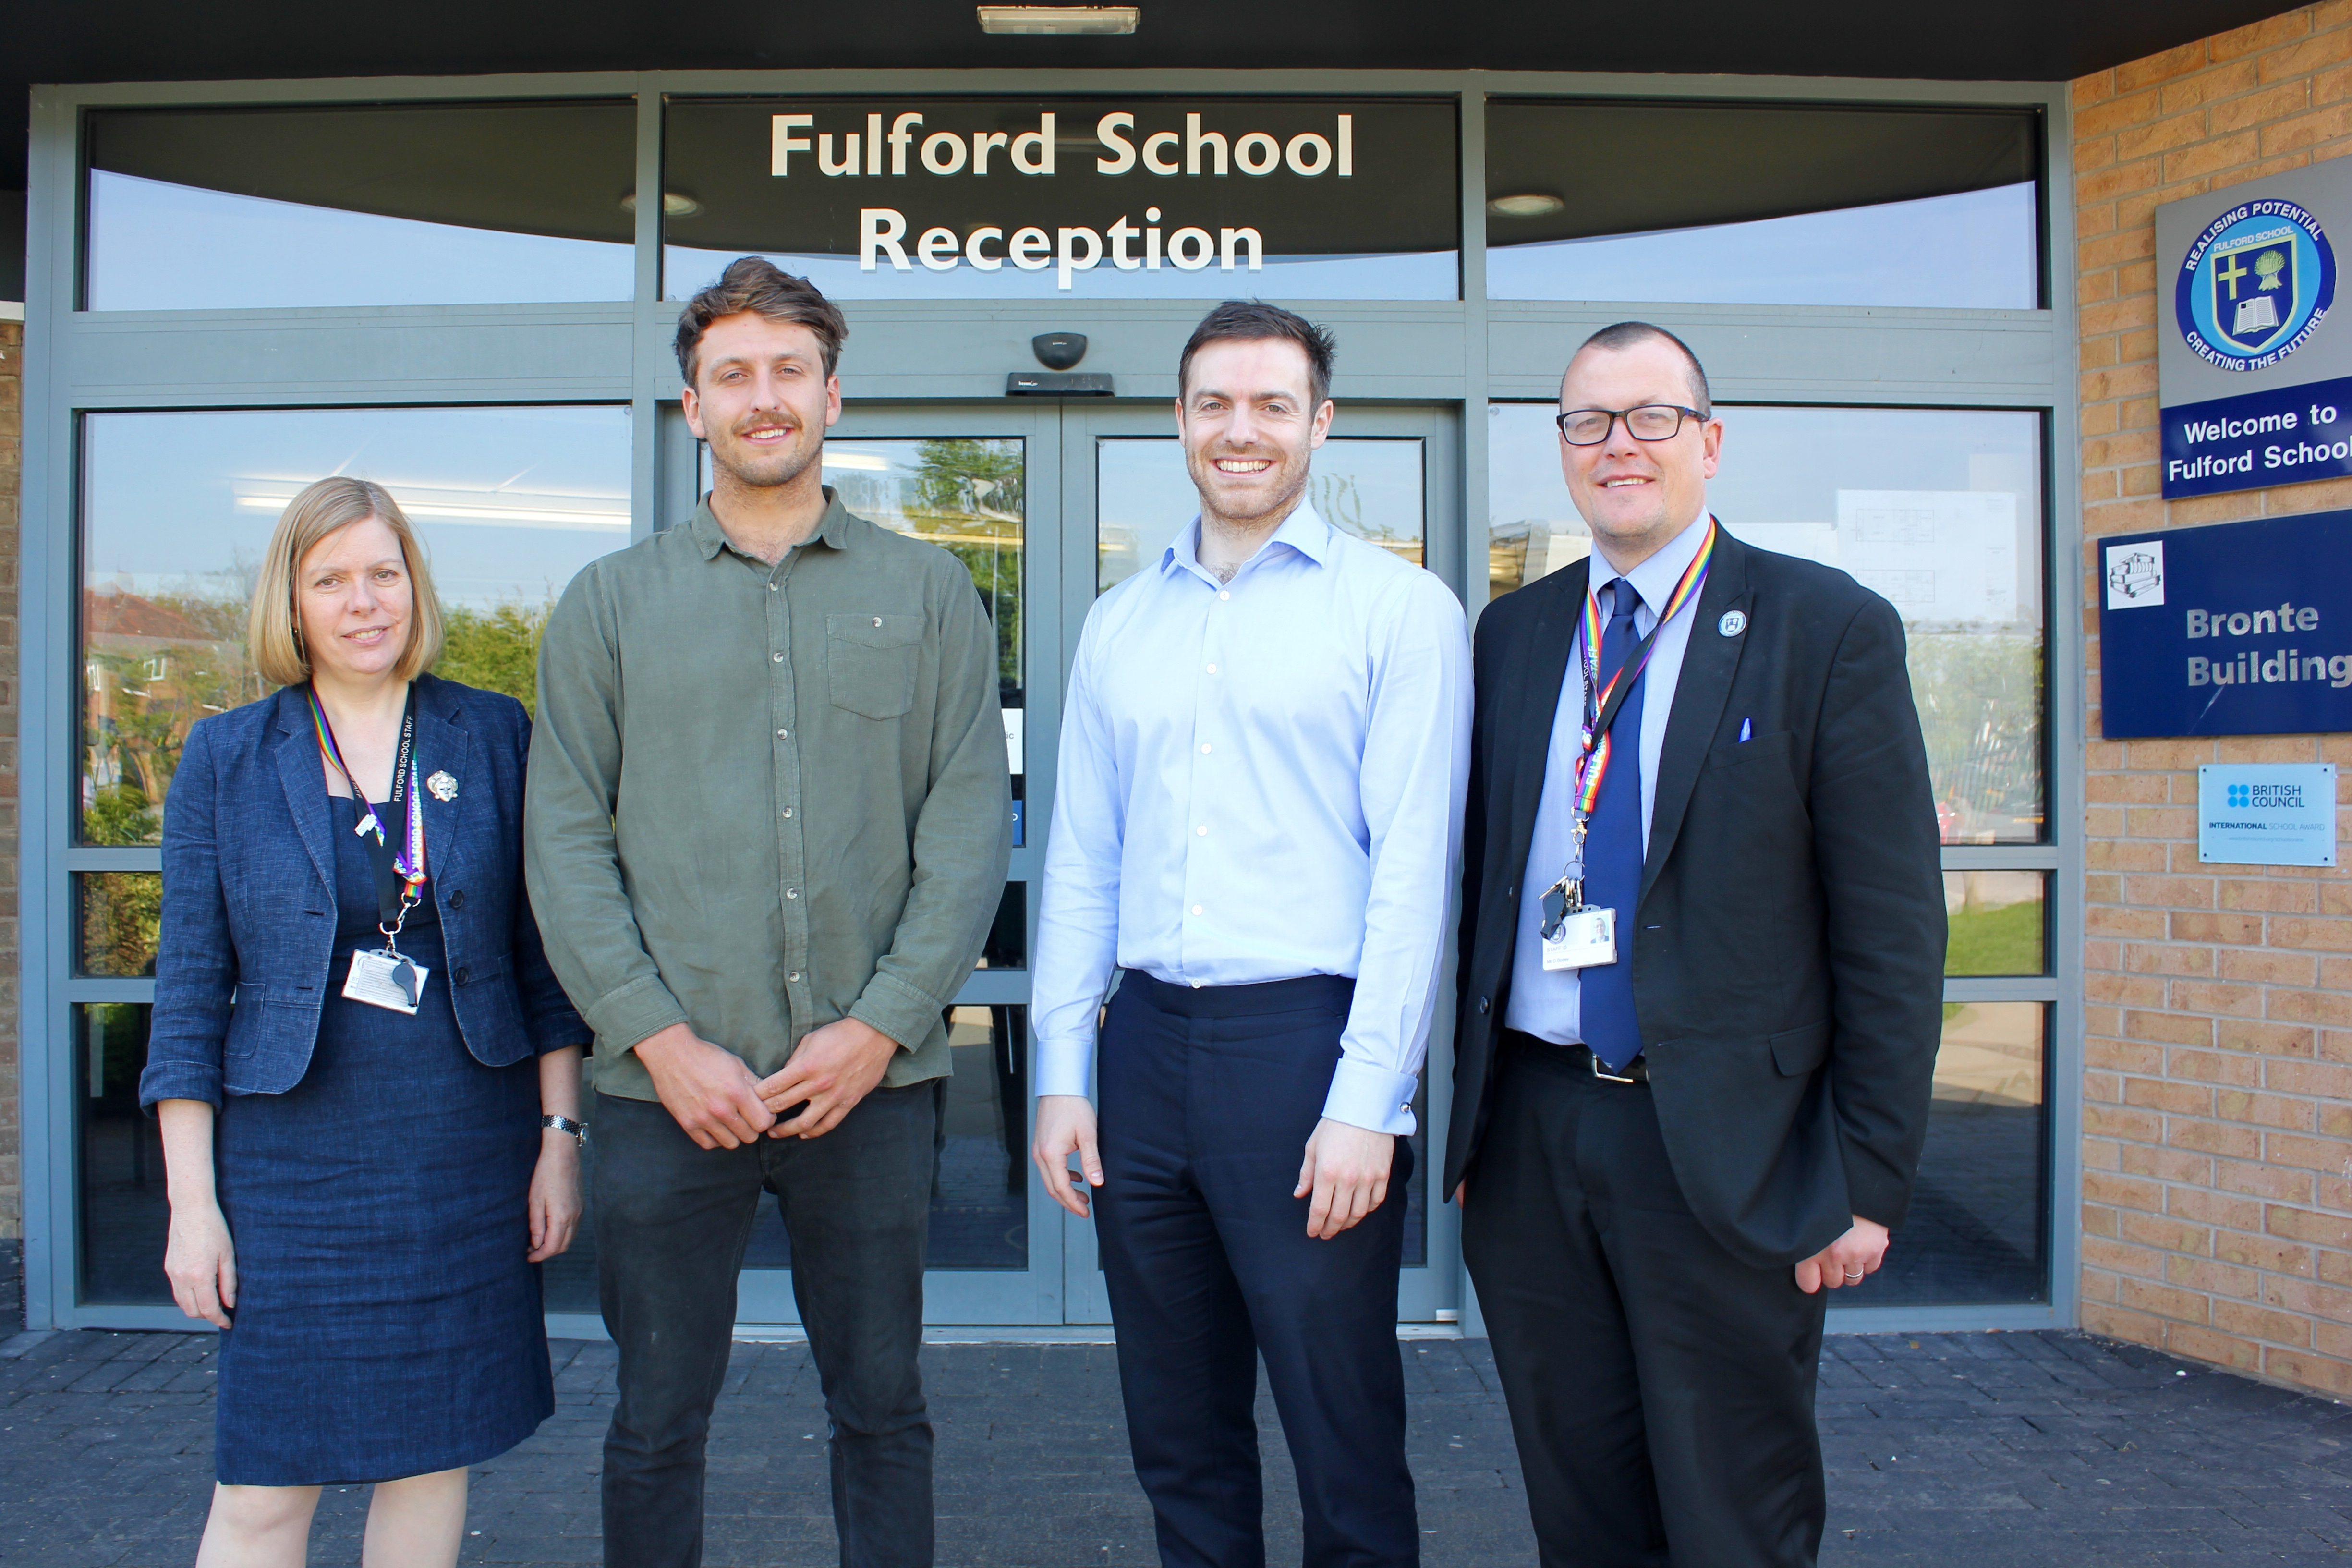 Jason and Russell Paver visit Fulford School